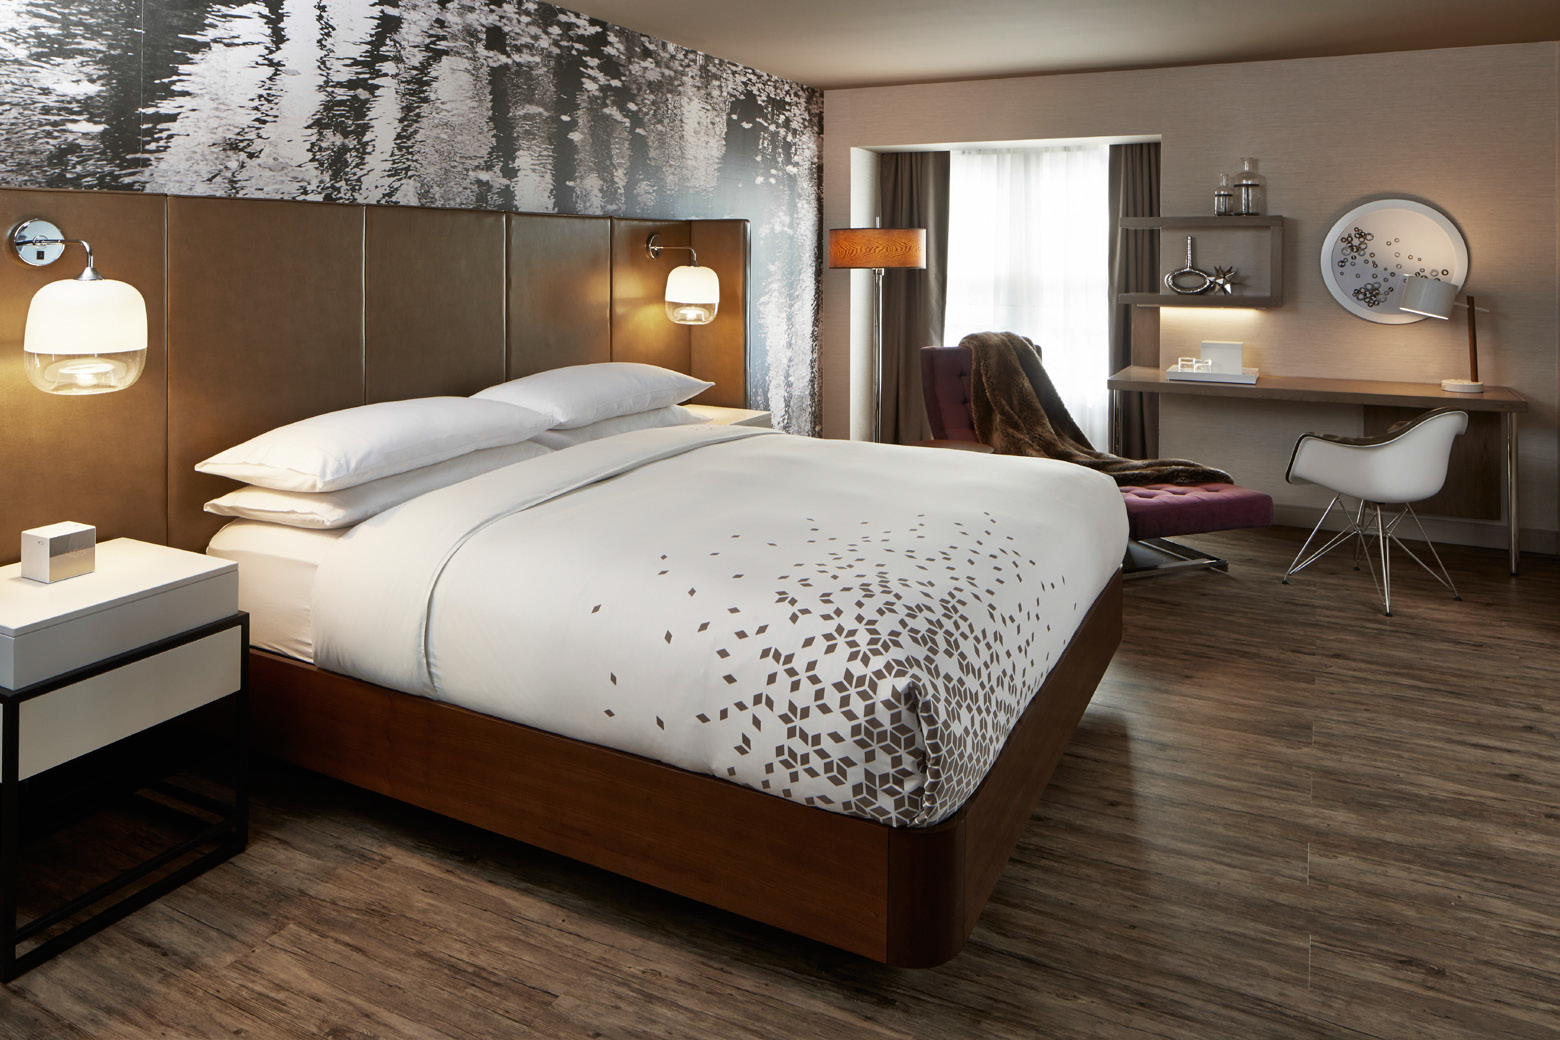 Kimball Bedroom Furniture Dickinson Contract Is The Midwests Source For Casegoods Flooring